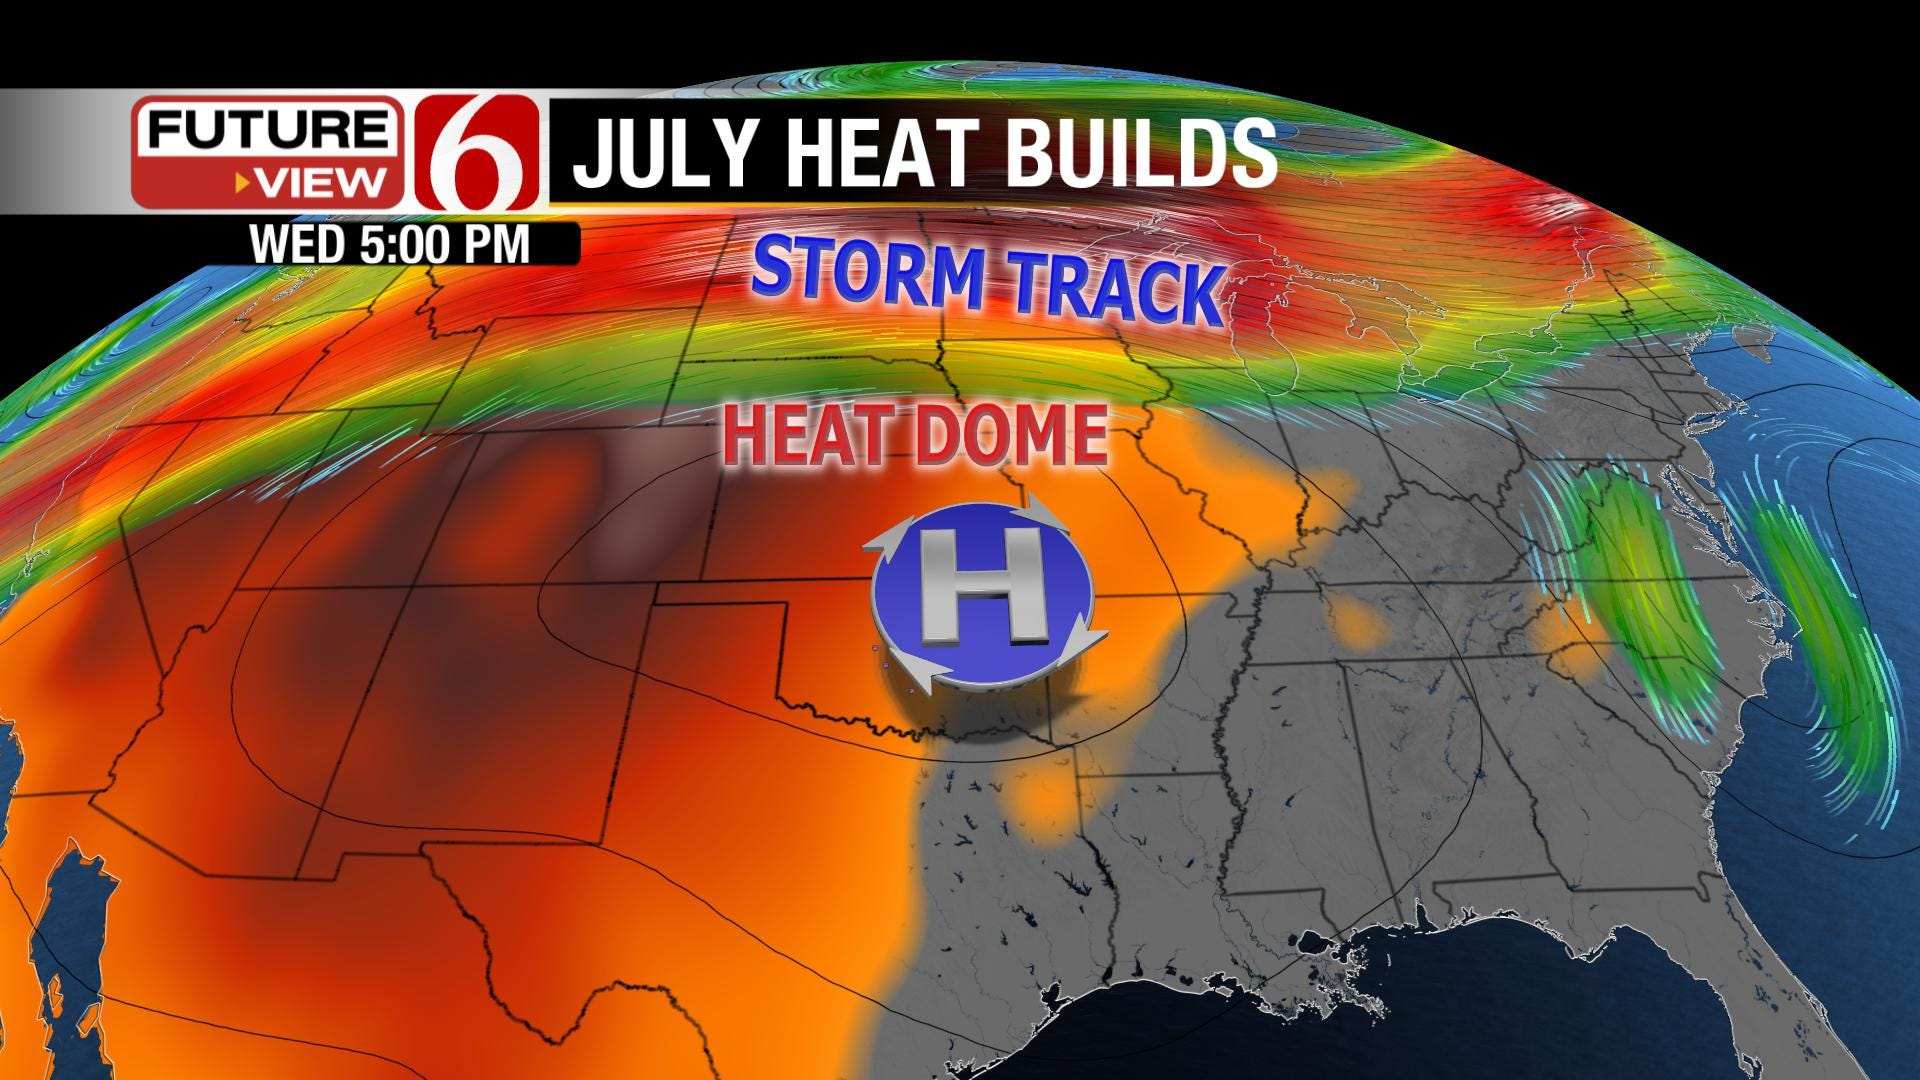 Another Heat Wave Building in Oklahoma